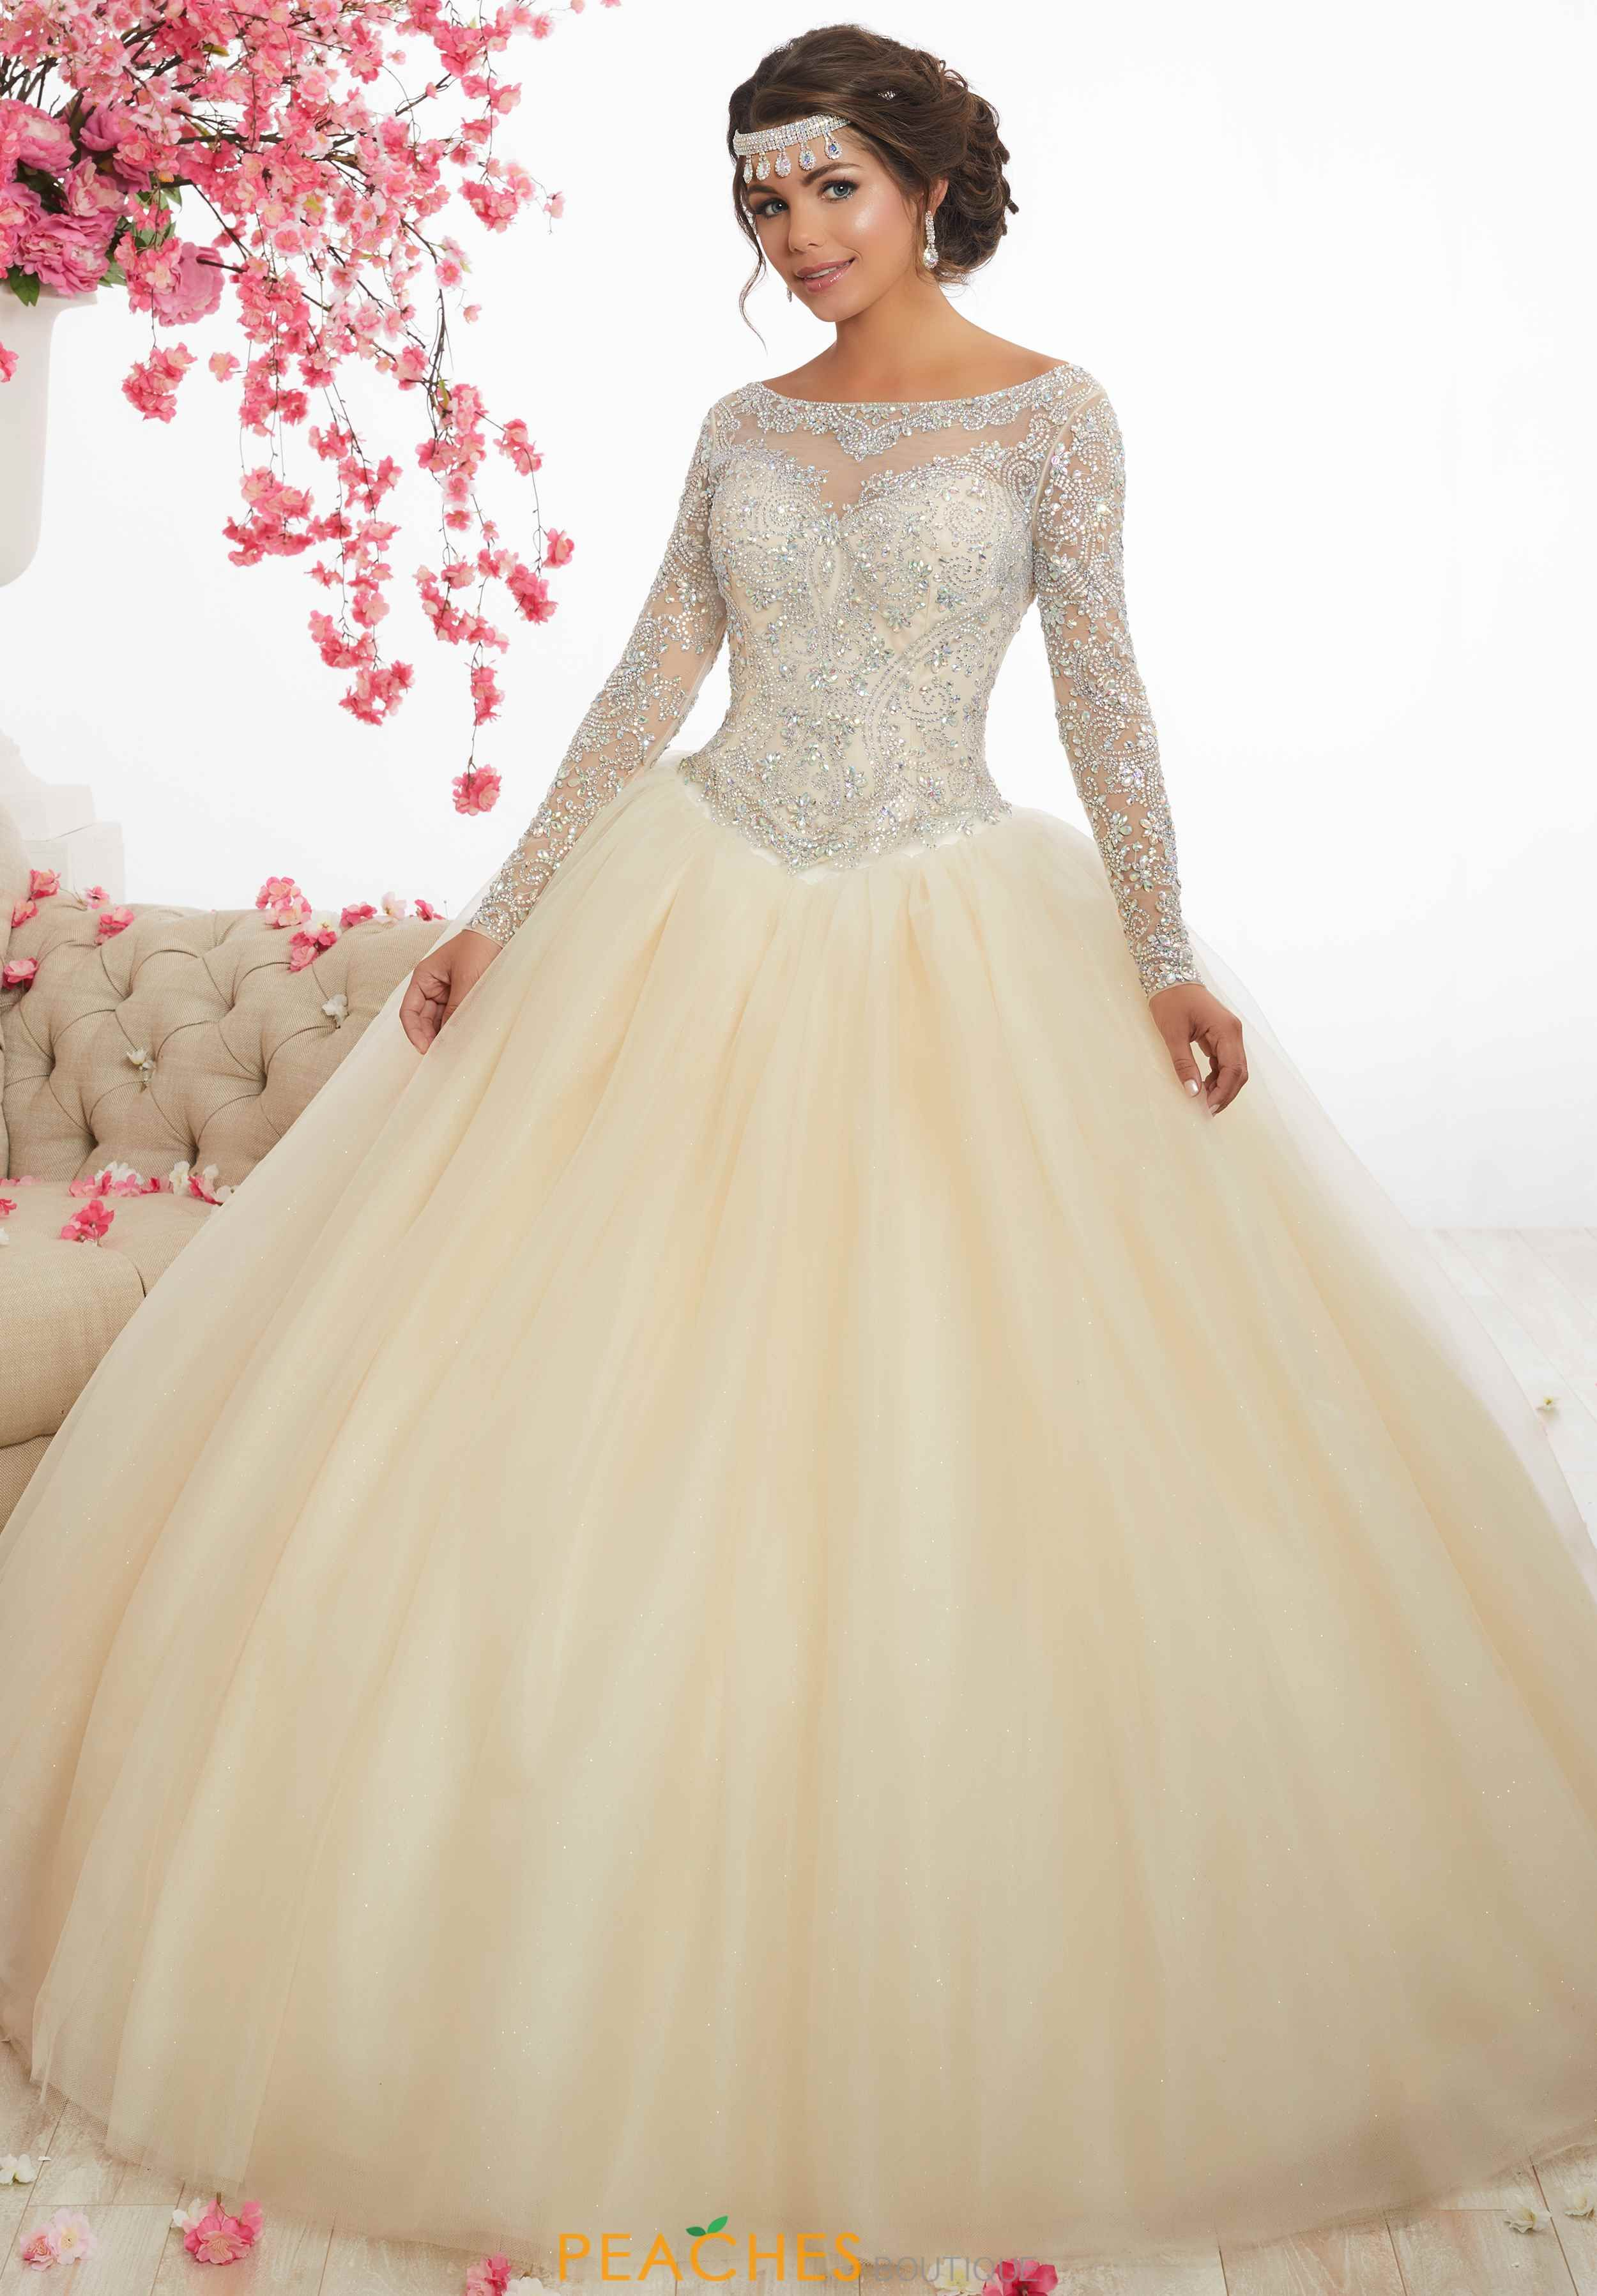 7204d80113c Tiffany Quince Beaded Long 56347 Dress in 2019